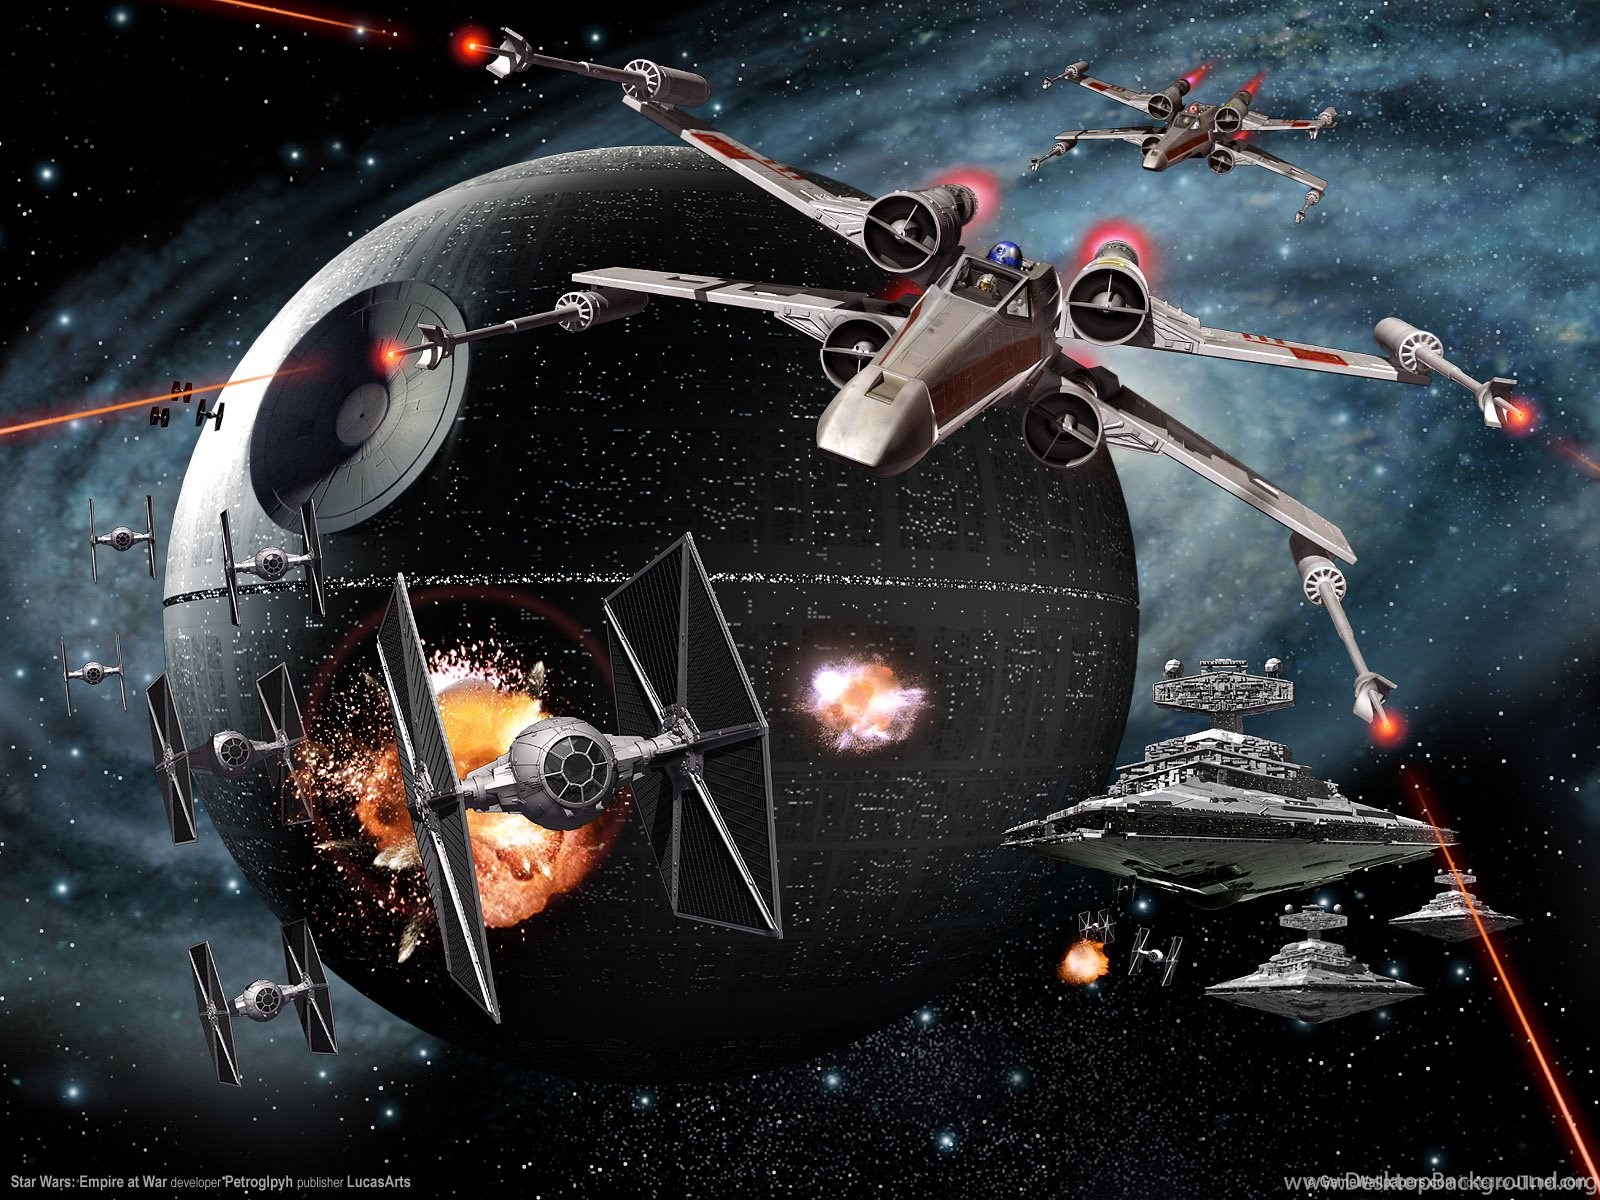 Star Wars 3 Hd Resolution Wallpapers Movie Wallpapers Localwom Desktop Background